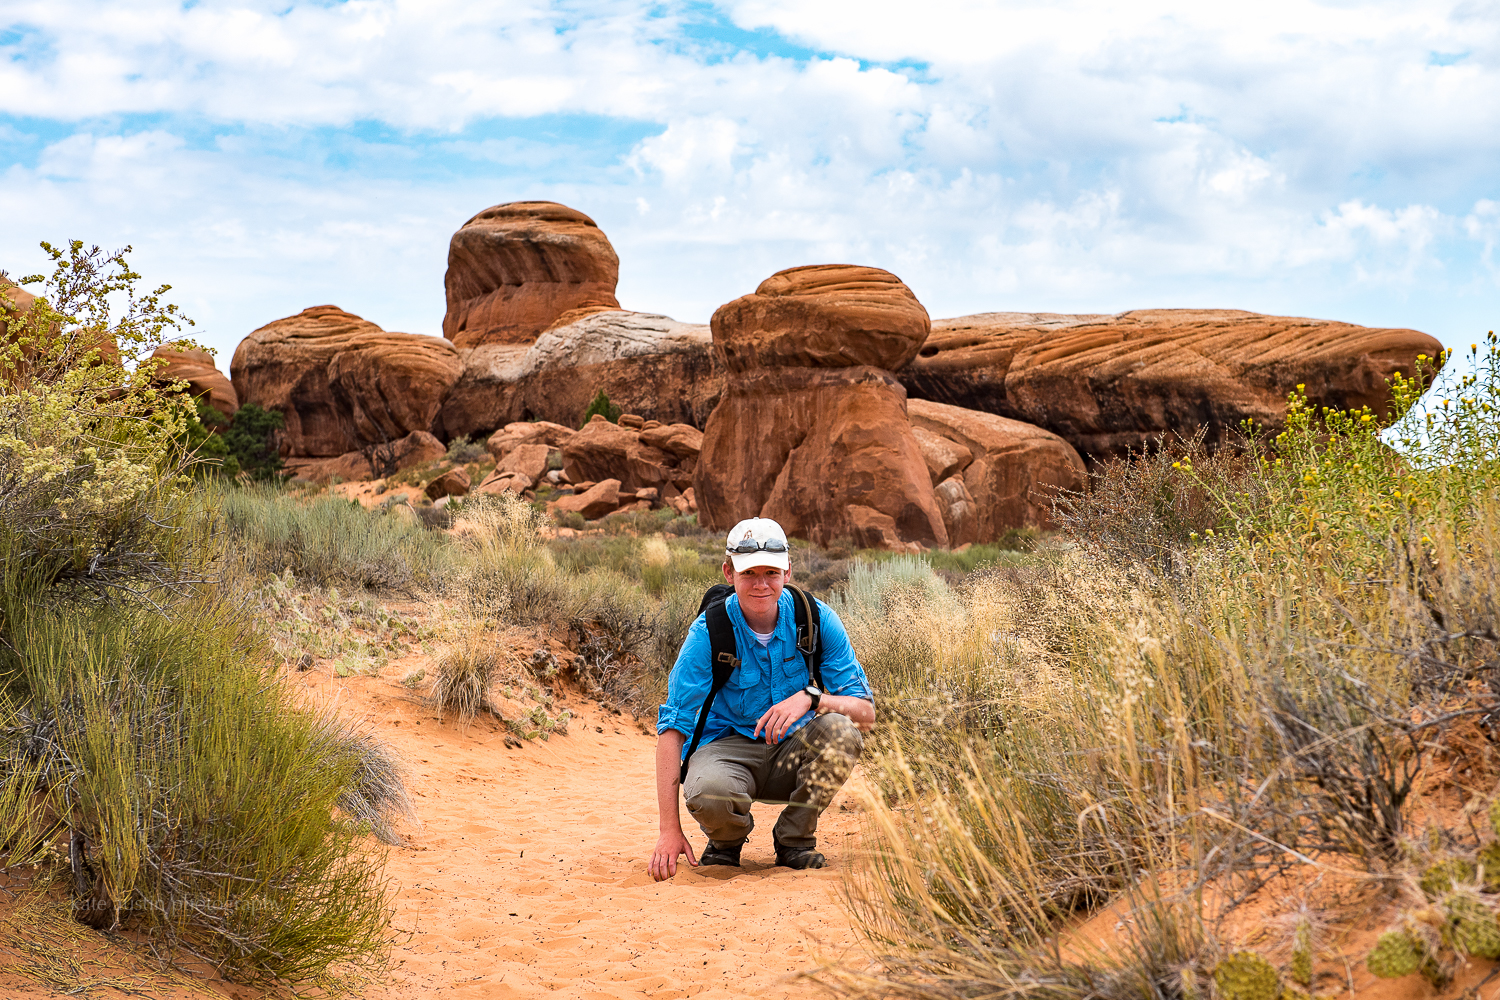 day37_murphytrail-canyonlands_moab201620160801-4.jpg